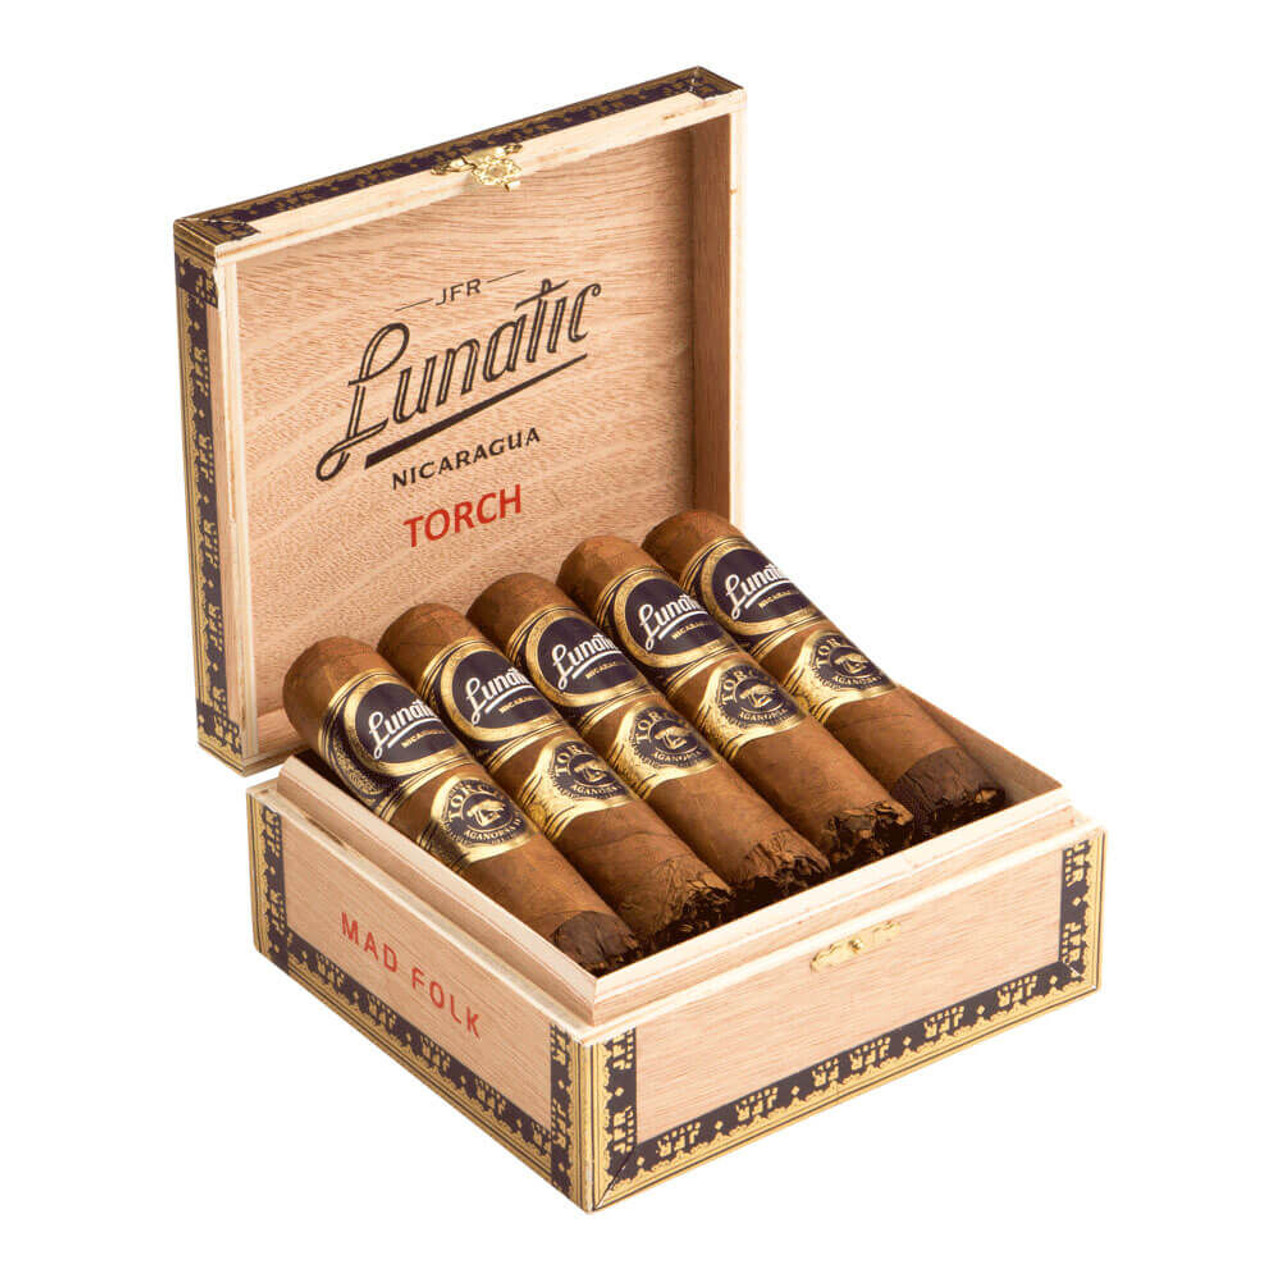 JFR Lunatic Torch Mad Folk Cigars - 4.75 x 70 (Box of 10)